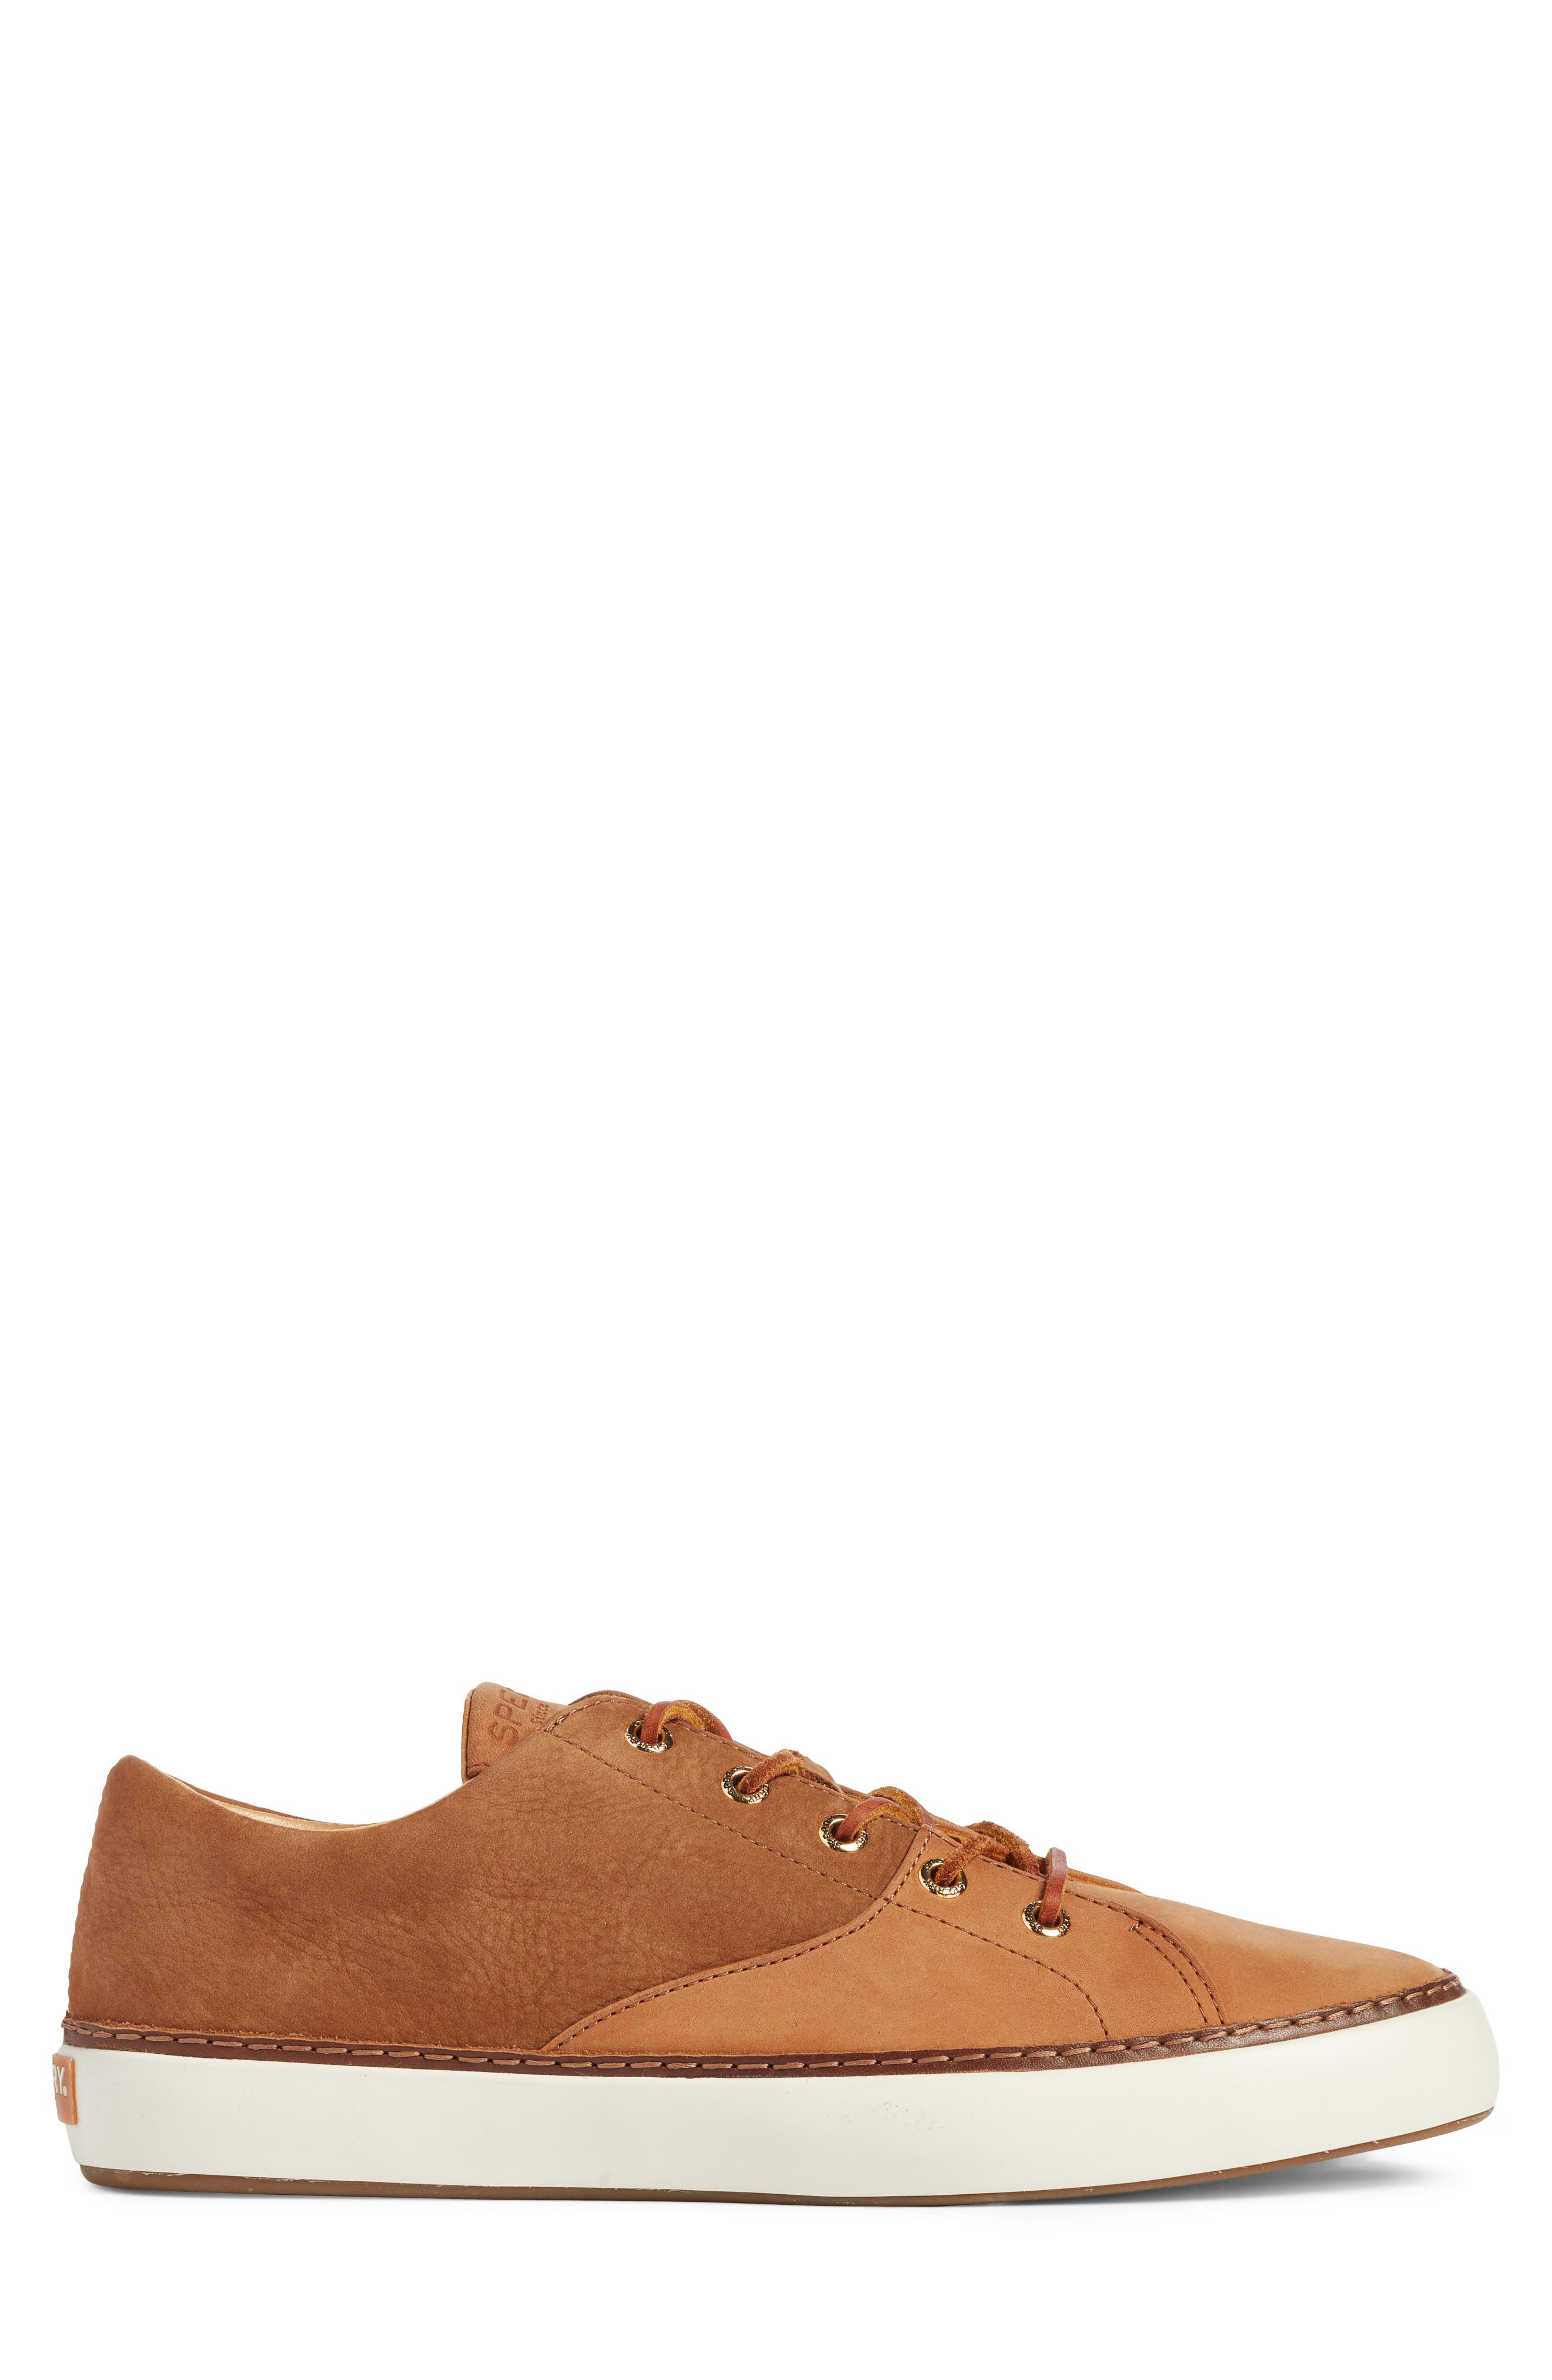 Gold Cup Haven Sneaker,                             Alternate thumbnail 3, color,                             TAN LEATHER